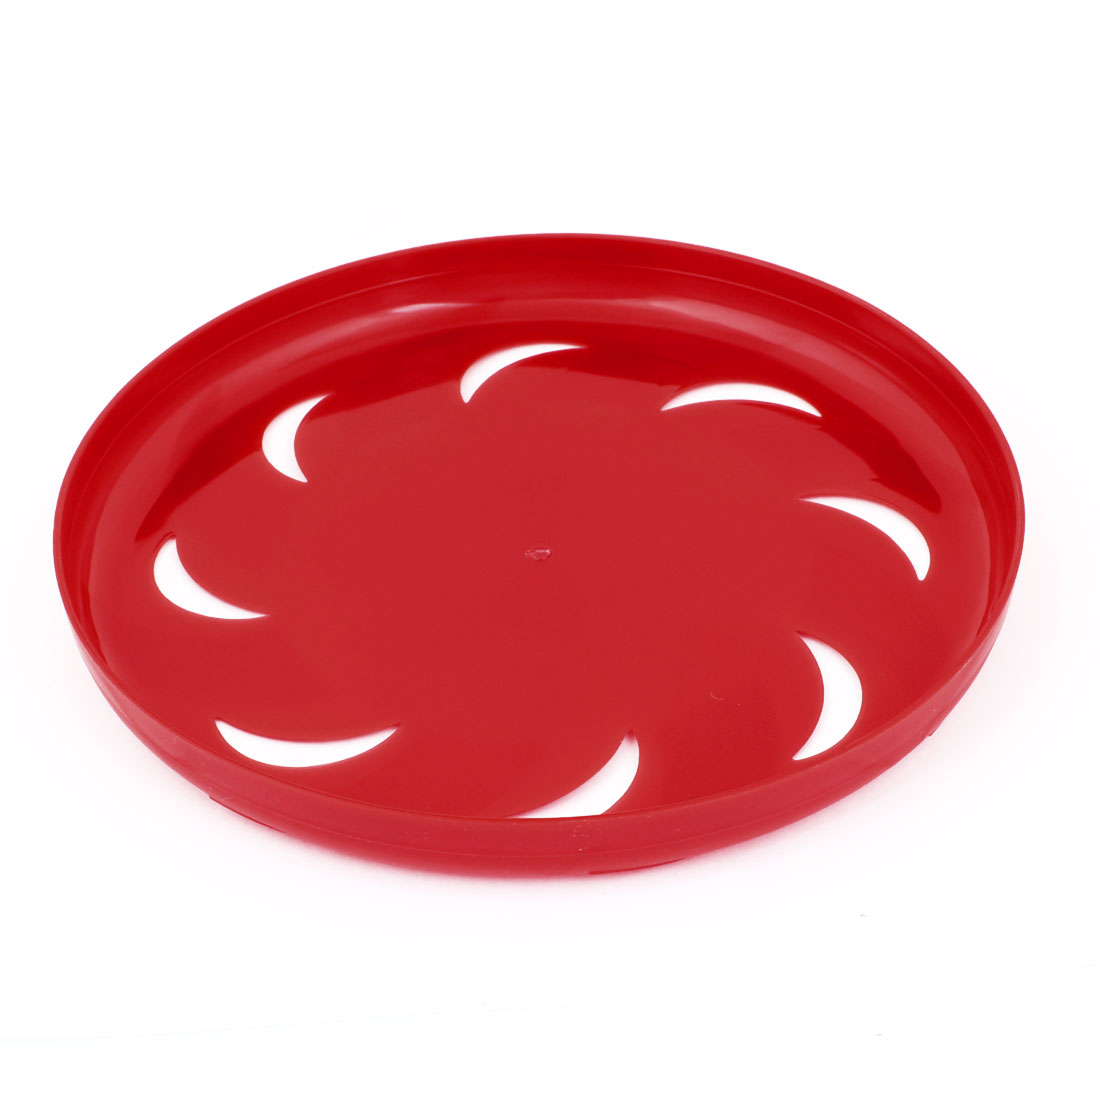 "Pet Dog Training Red Plastic Hollow Out Moon Flyer Disc Frisbee Toy 9.1"" Dia"